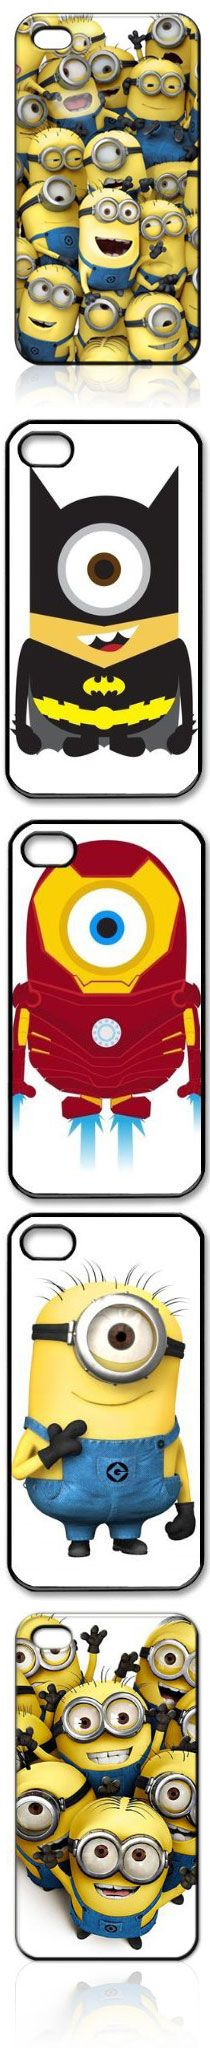 despicable me iphone covers